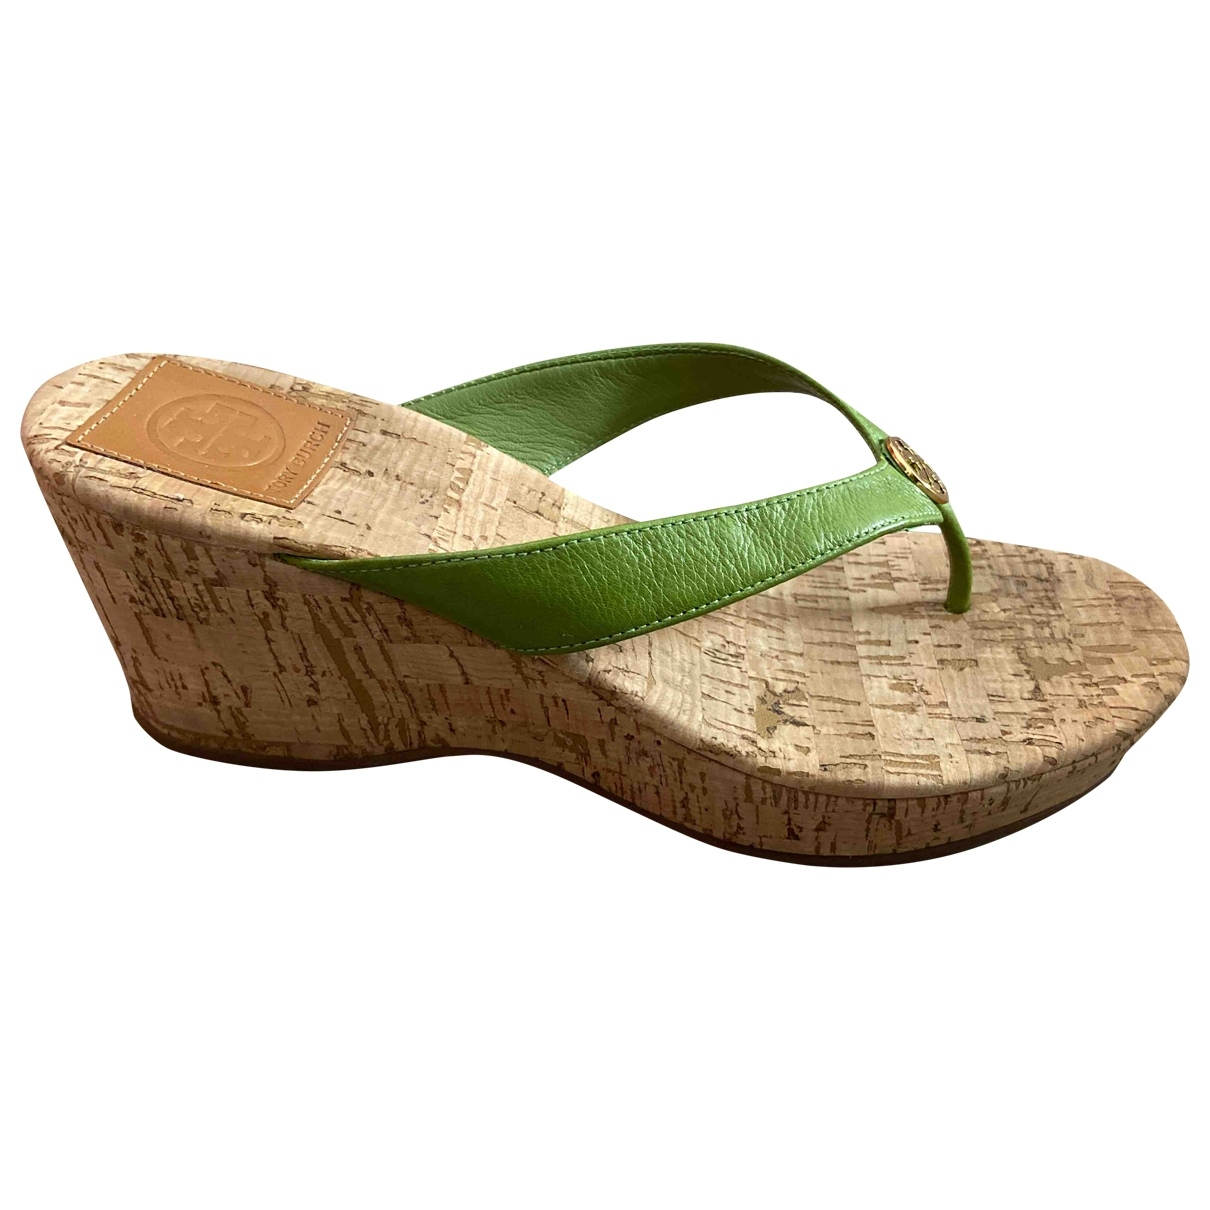 Tory Burch \N Green Leather Sandals for Women 9 US